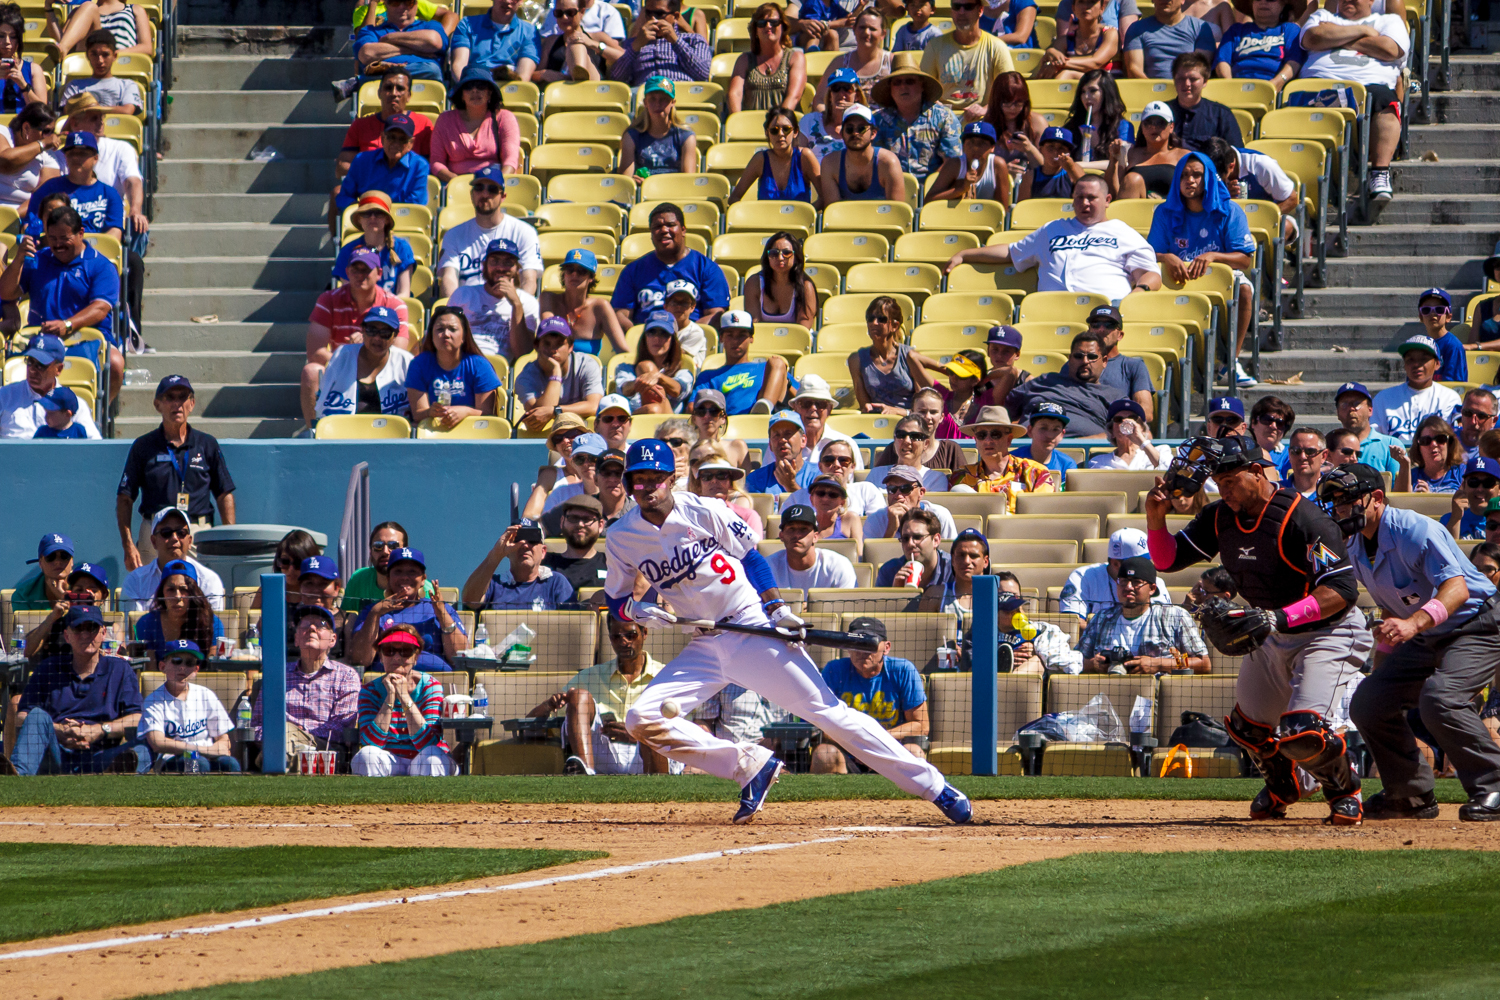 Dee Gordan laying a bunt down against the Marlins last year at Dodgers Stadium